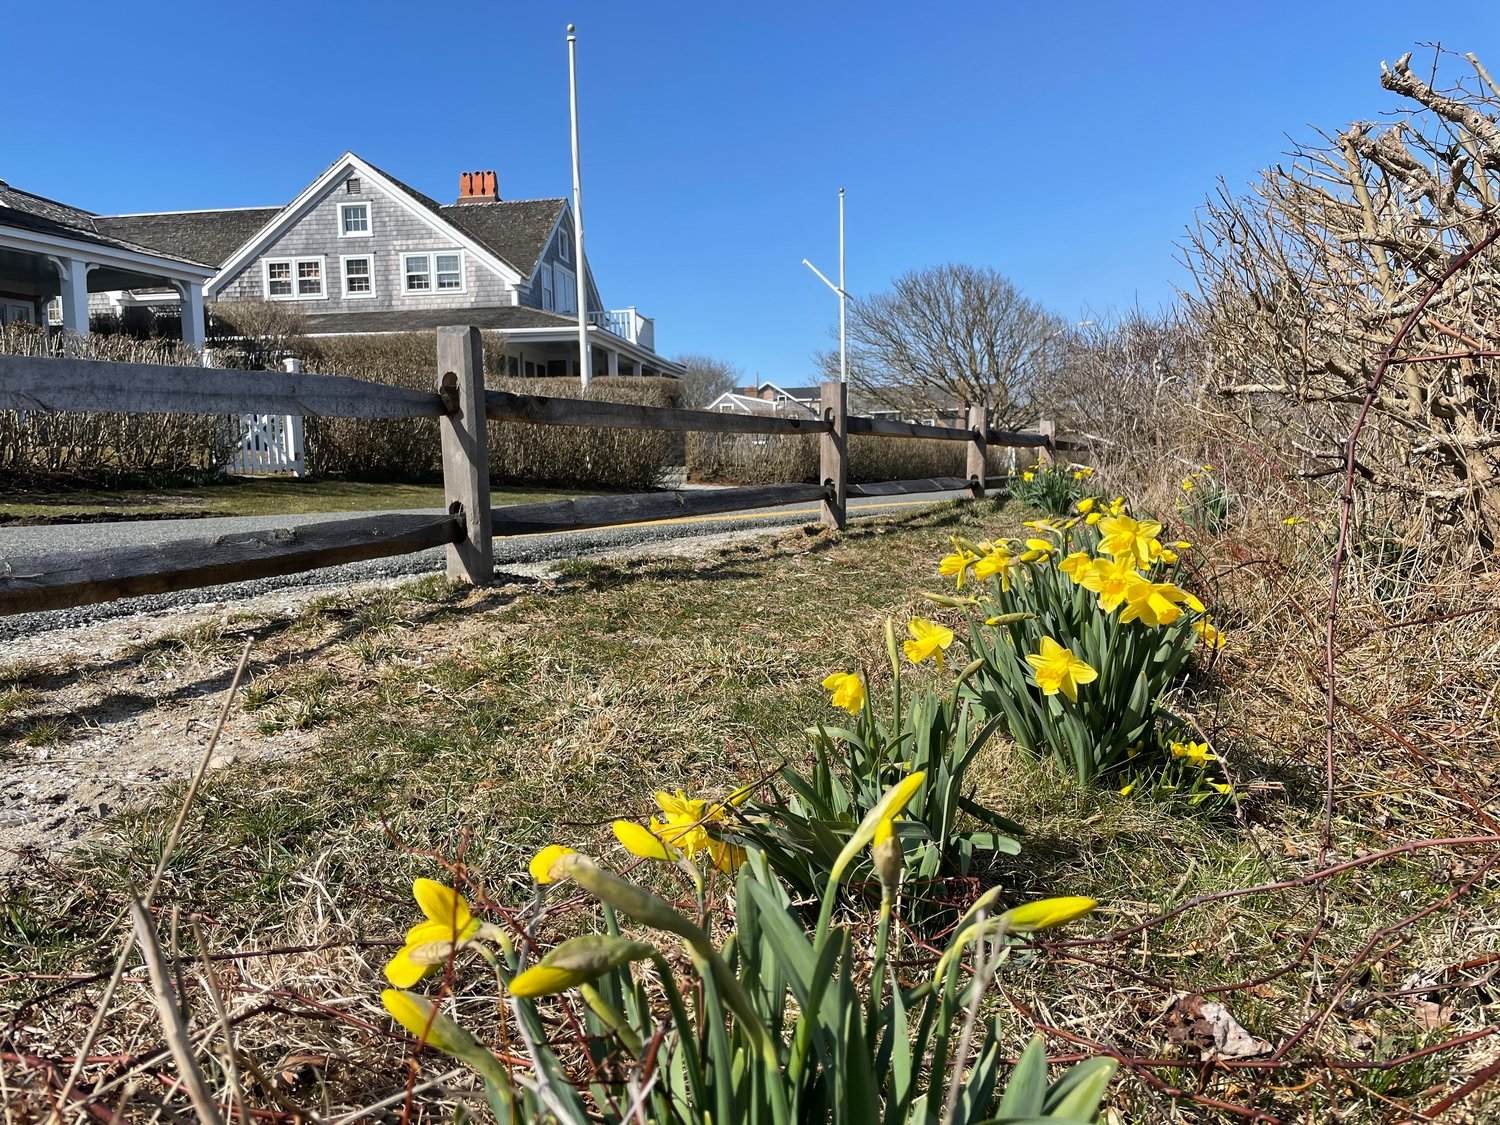 Daffodils in bloom in Sconset.